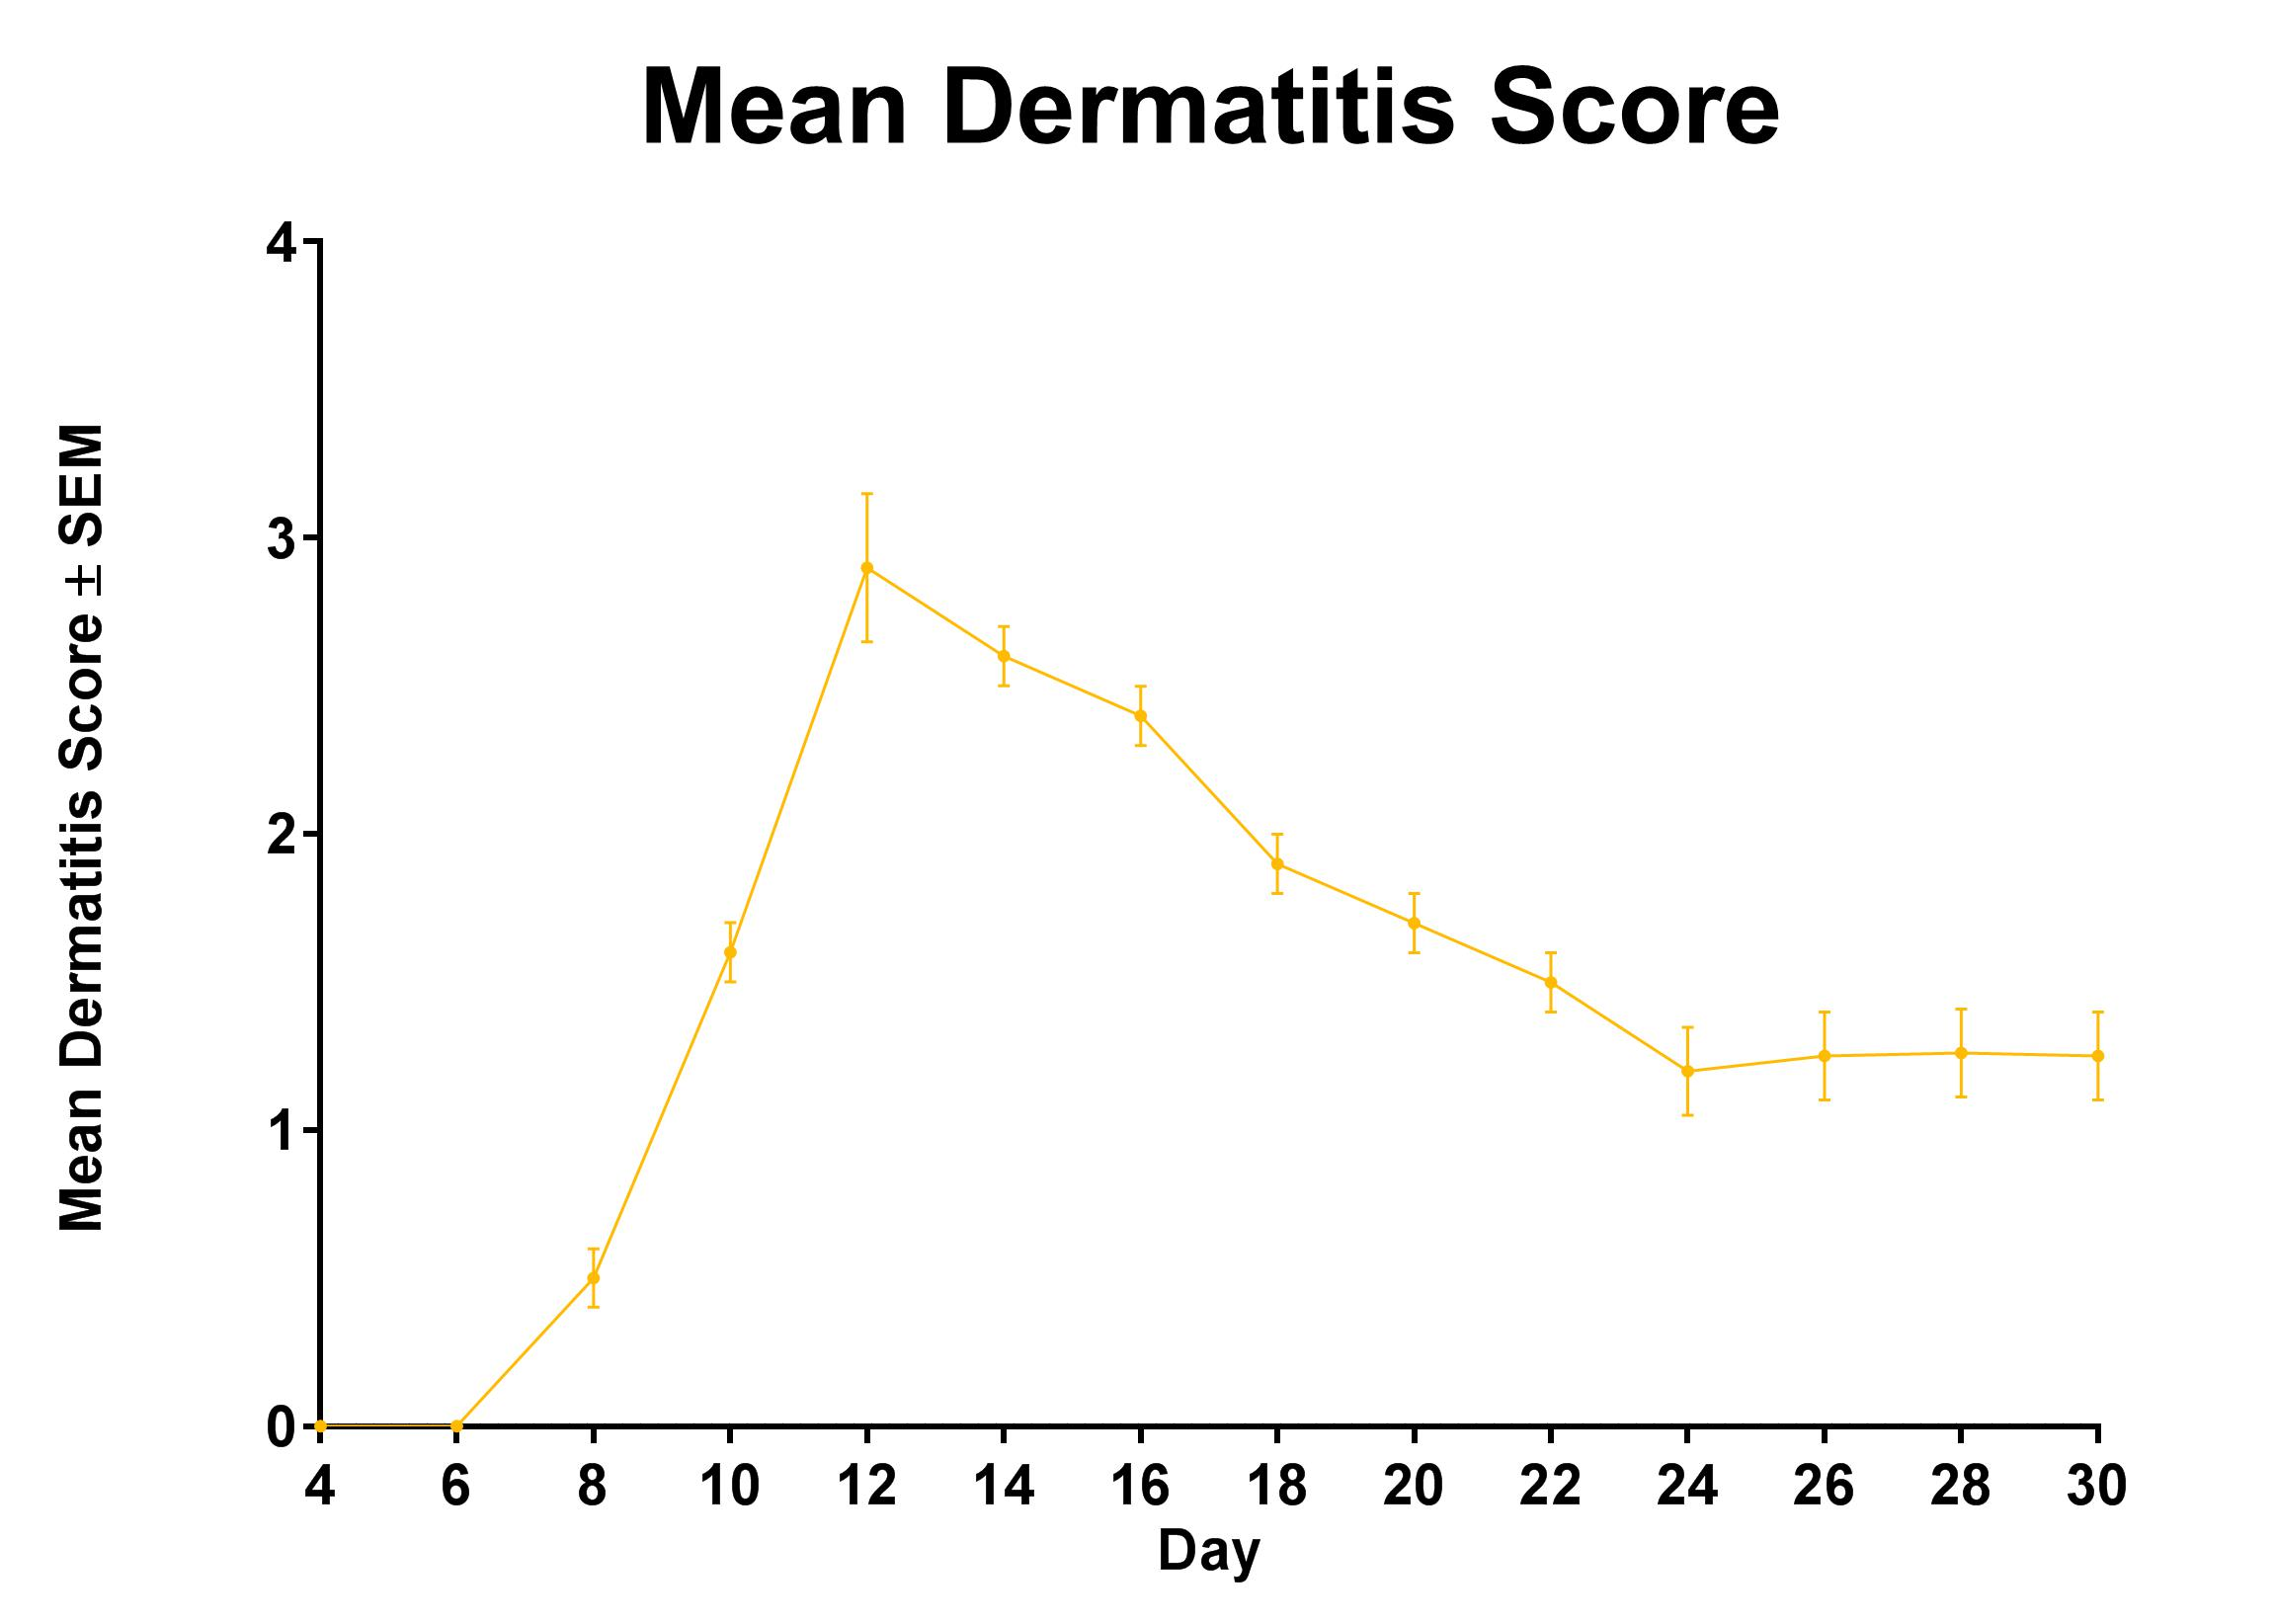 Typical Course of Dermatitis resulting from Acute Radiation Exposure